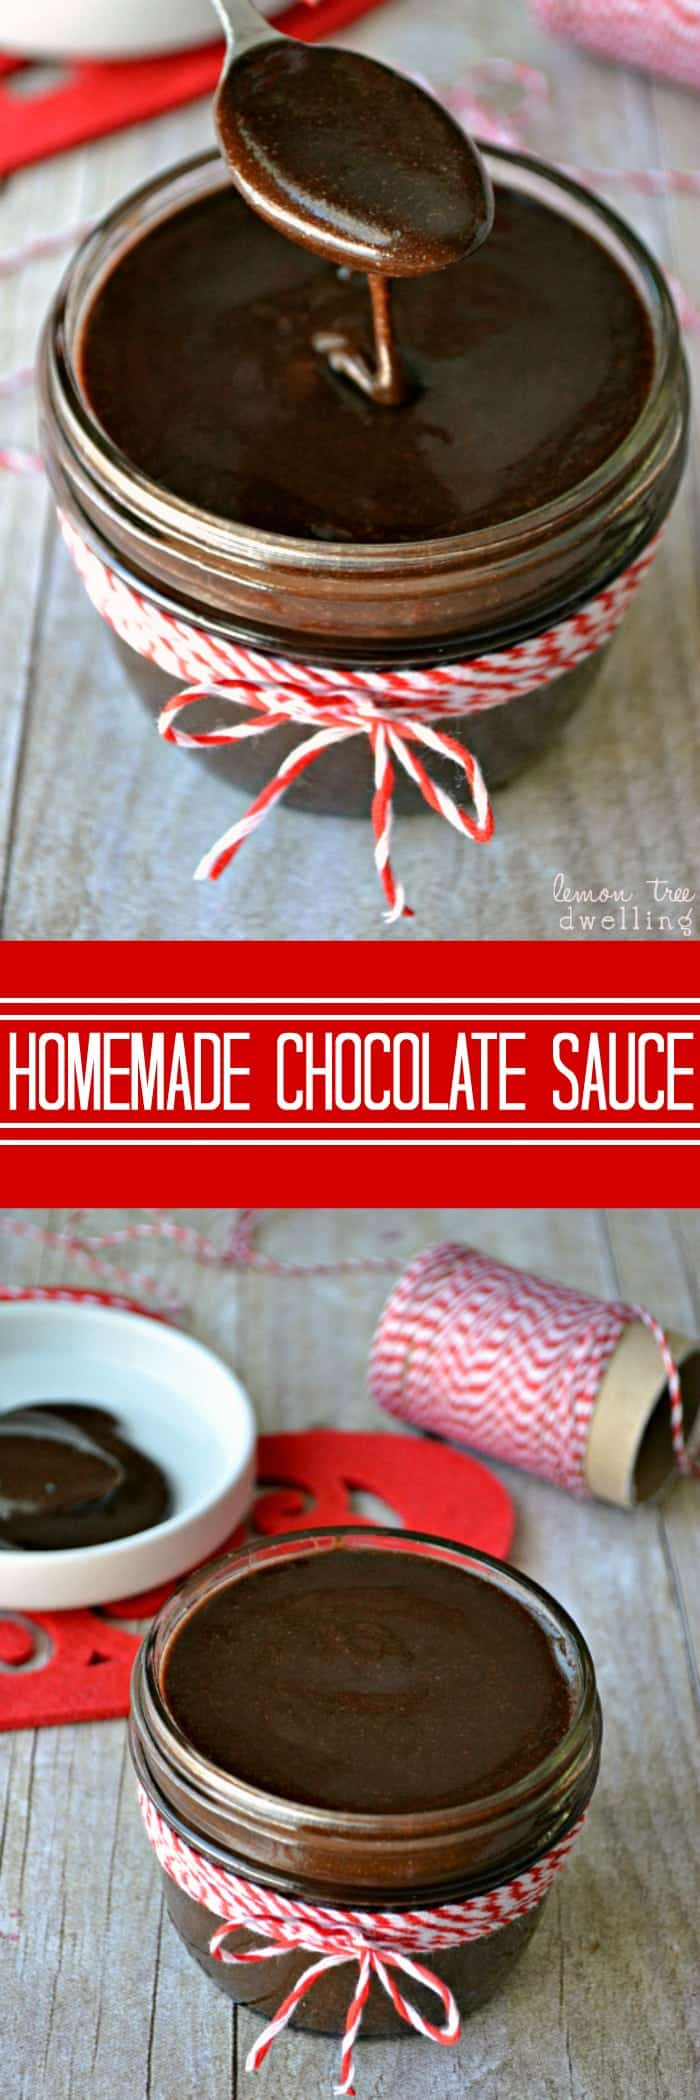 Rich, thick homemade chocolate sauce made with just 5 ingredients and perfect for drizzling on all your favorite desserts!